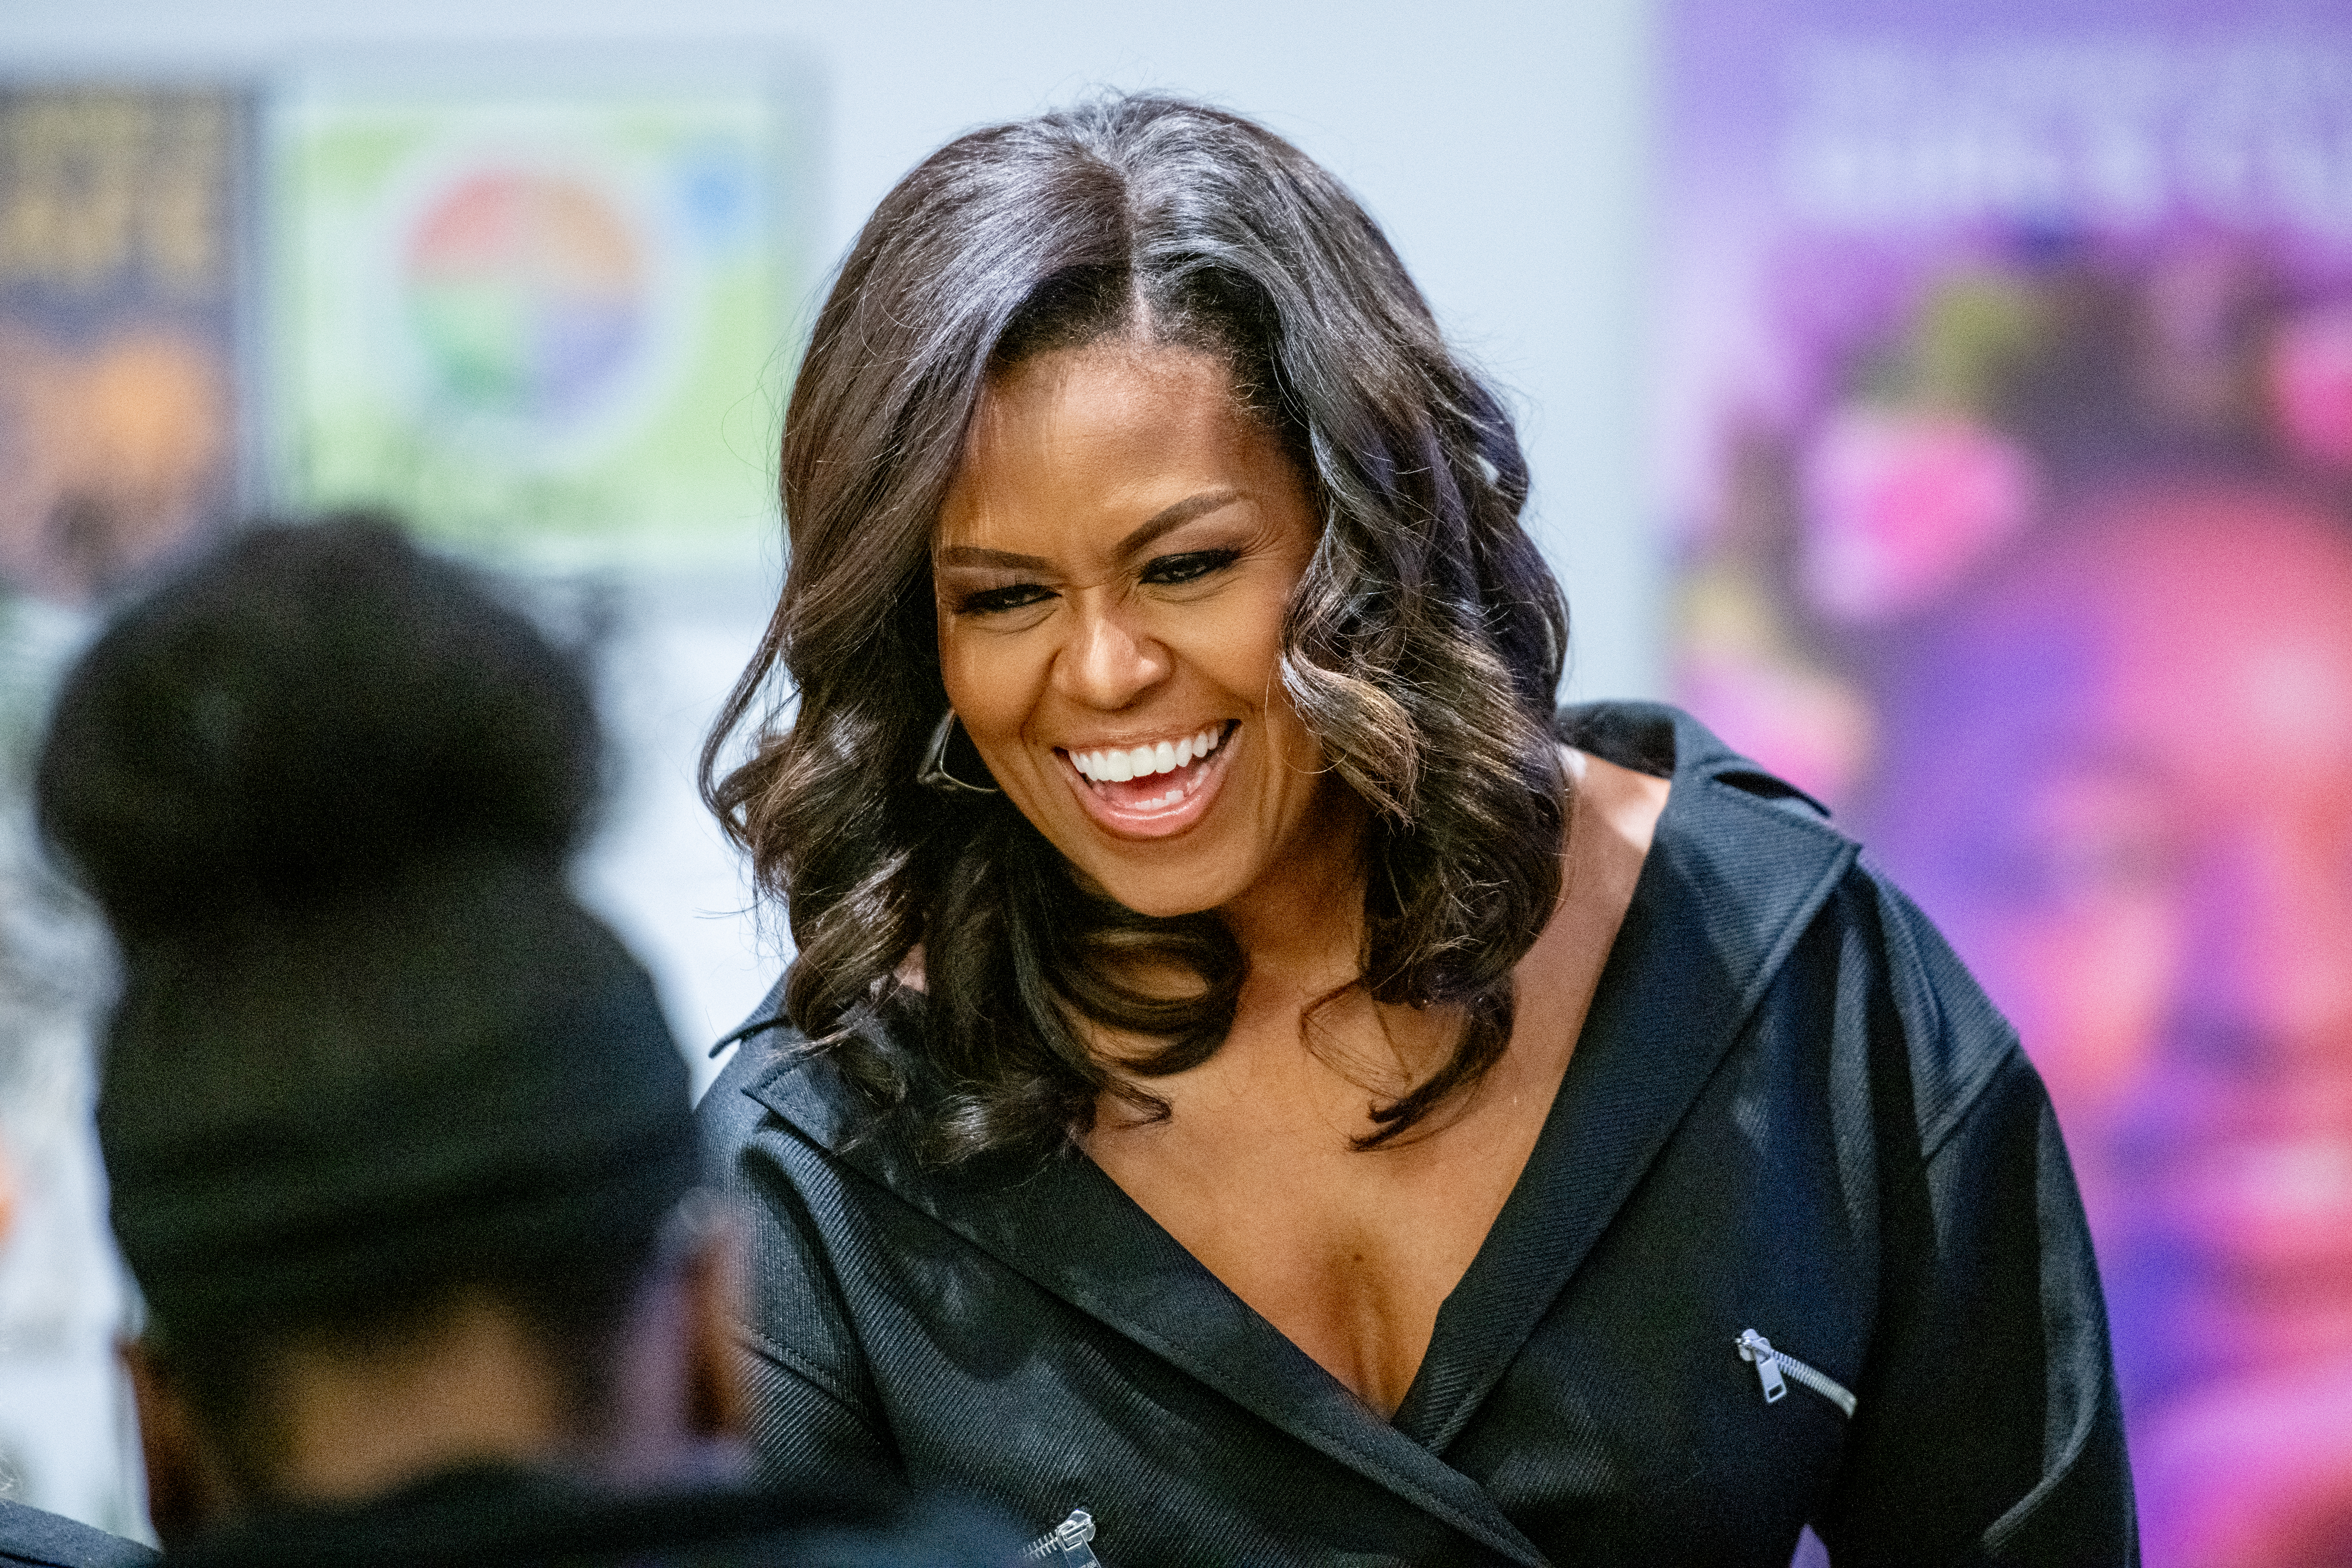 Michelle Obama launches a new Instagram TV series that follows four college students as they share the highs and lows of their first year of college.